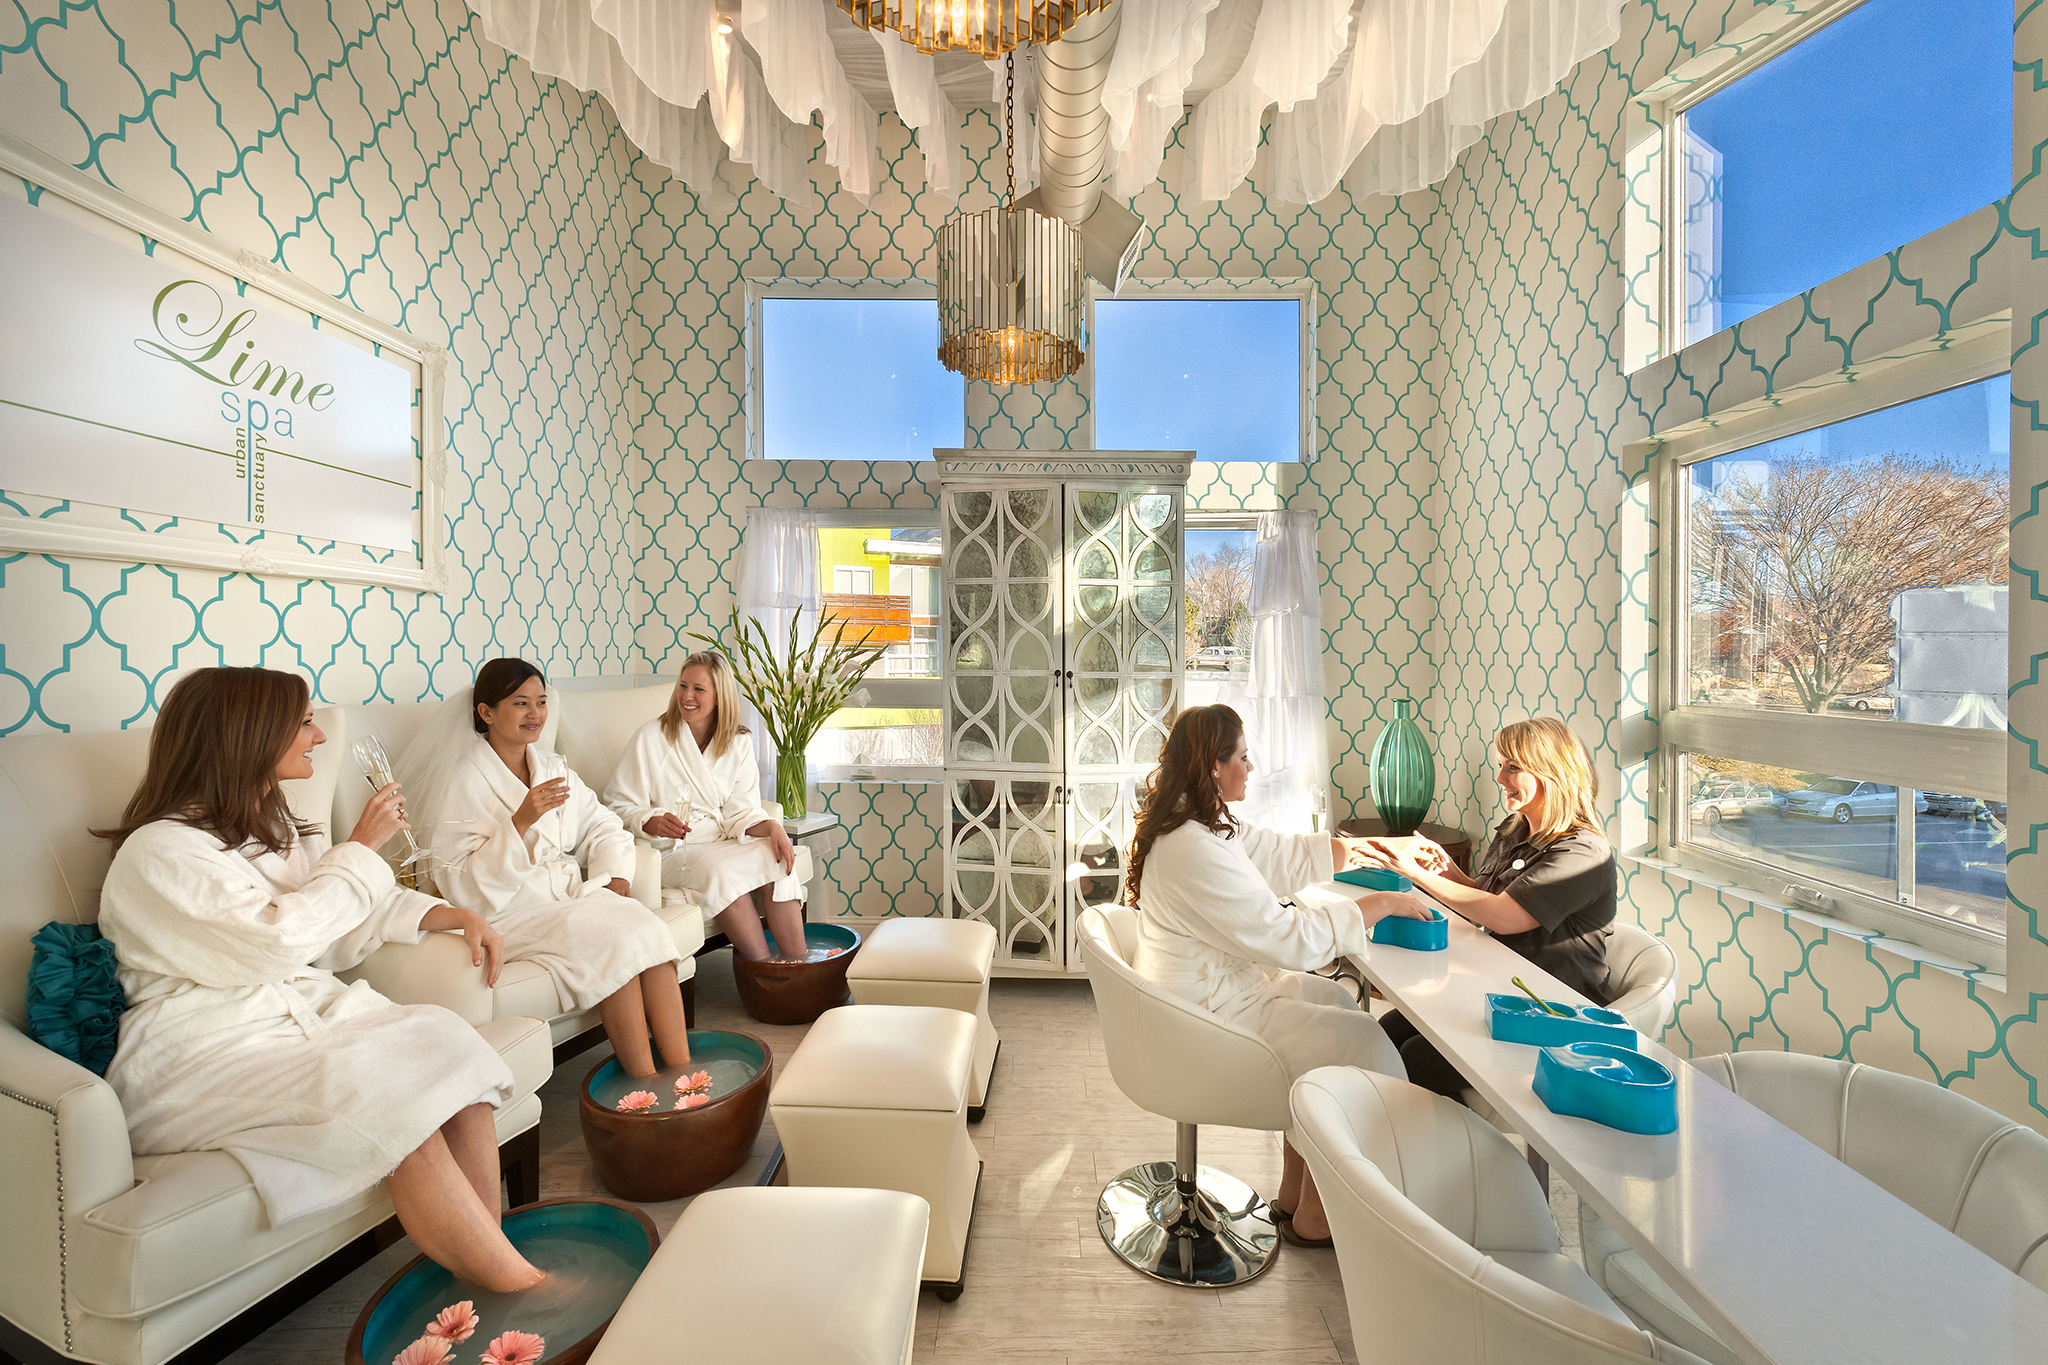 Best day spas and spa resorts in america for A little luxury beauty salon